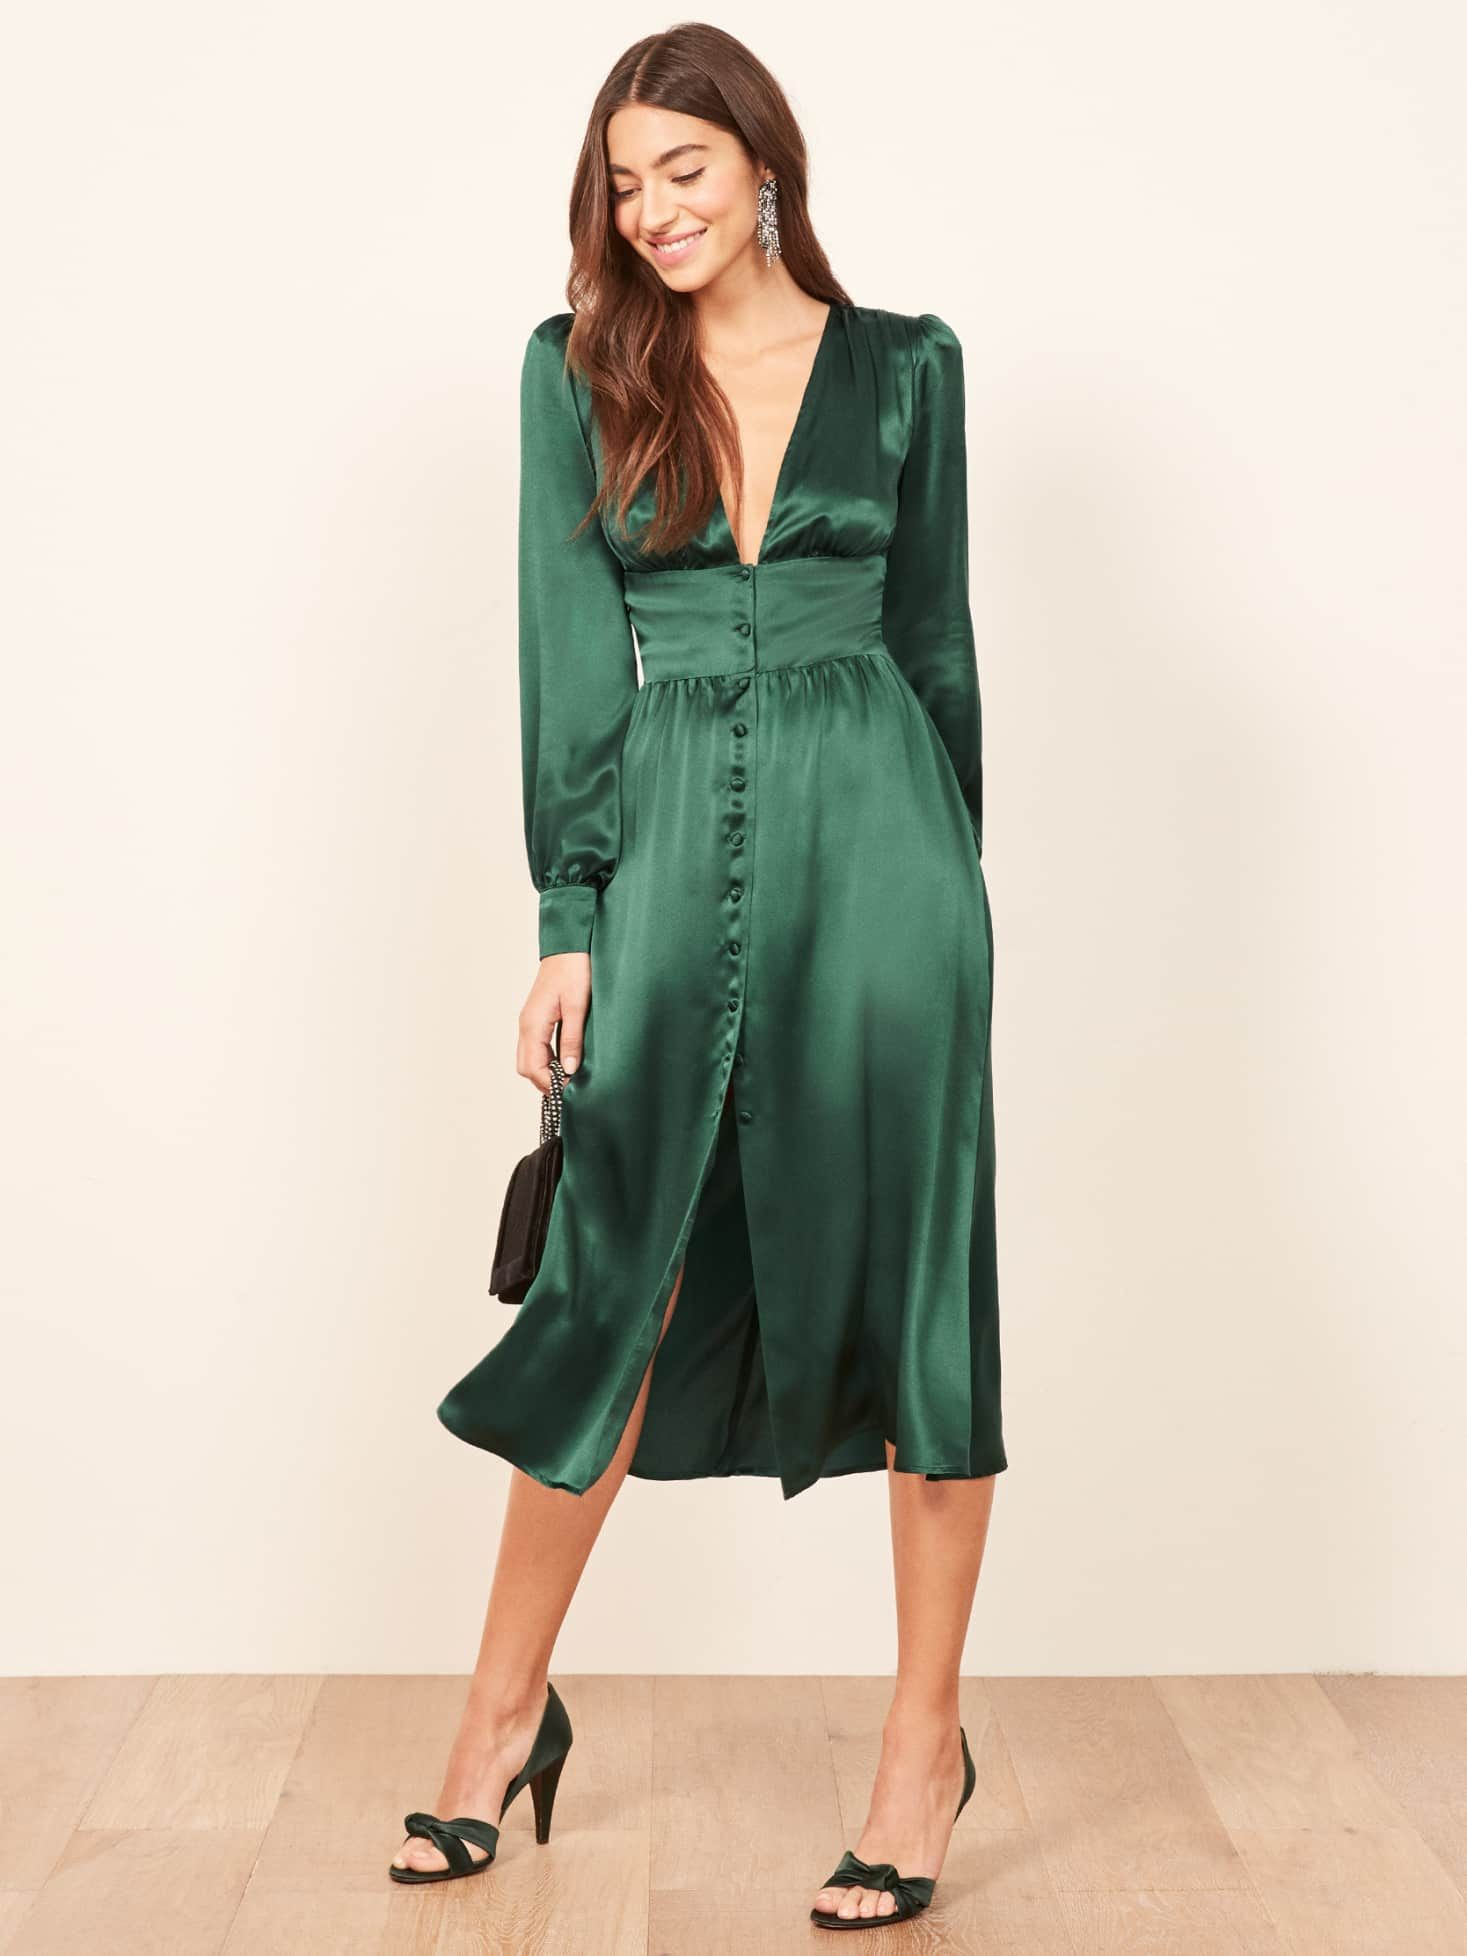 green reformation dress with v neckline and buttons